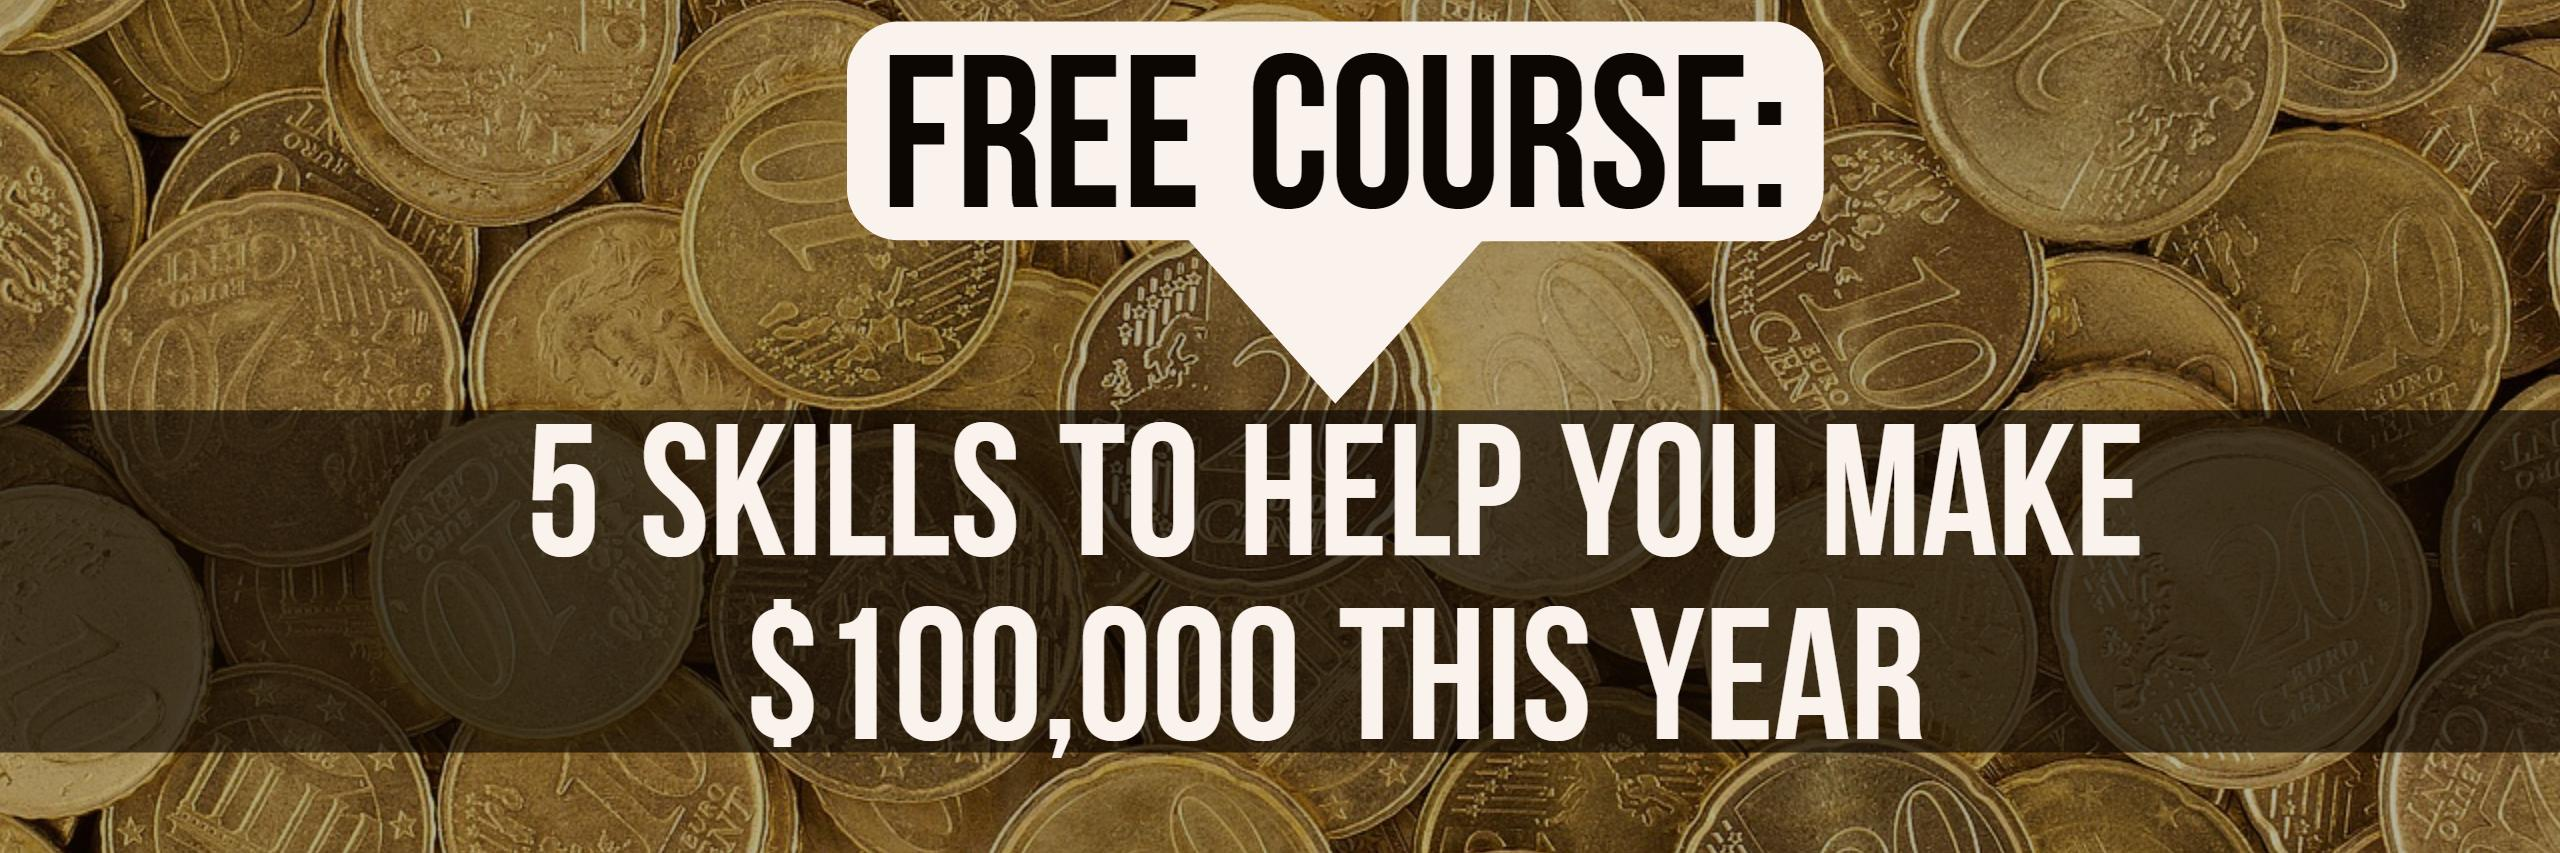 5 skills to help you make 100k this year